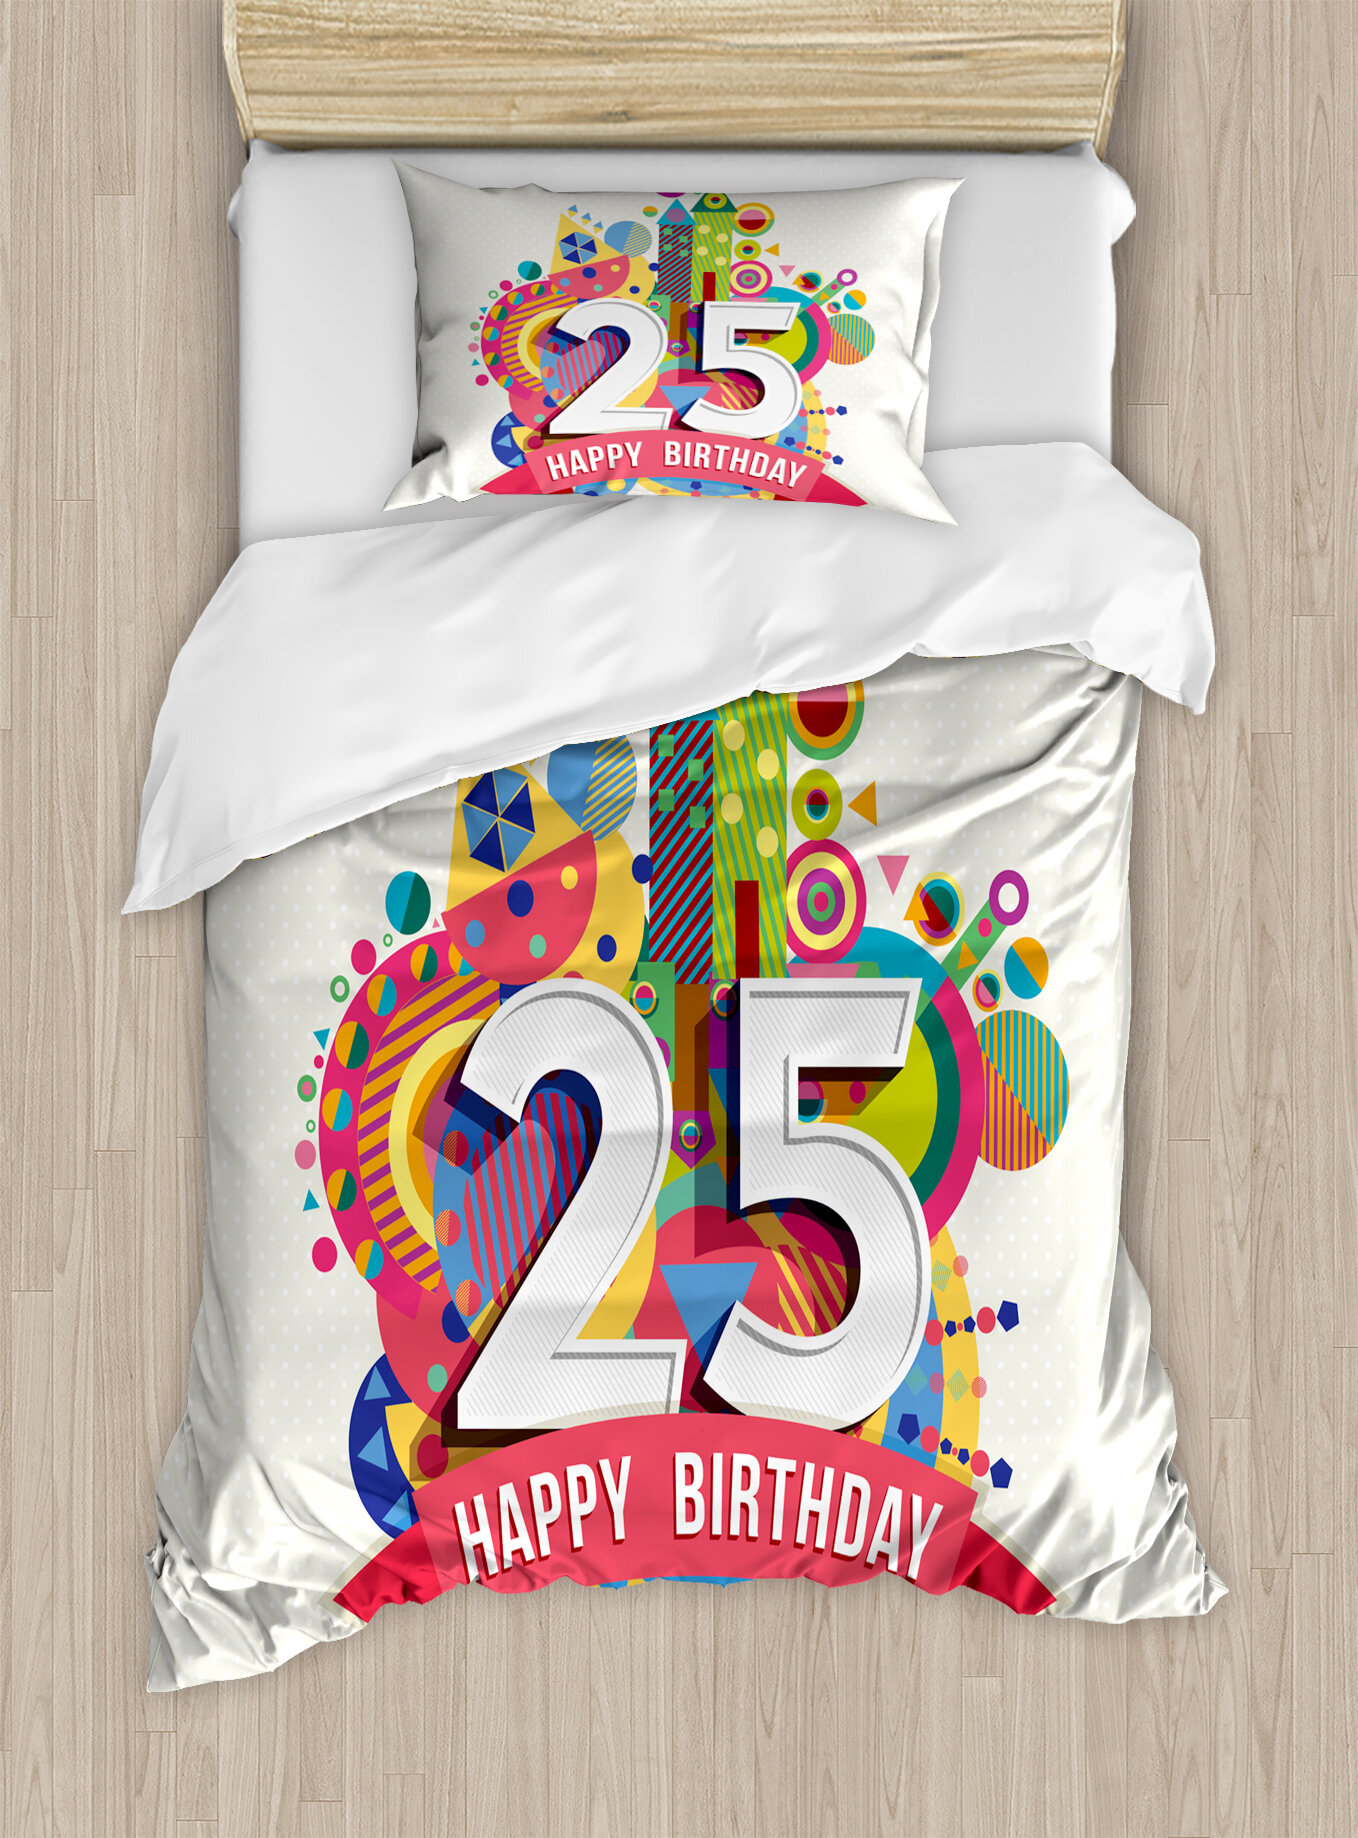 Ambesonne 25th Birthday Decorations Duvet Cover Set